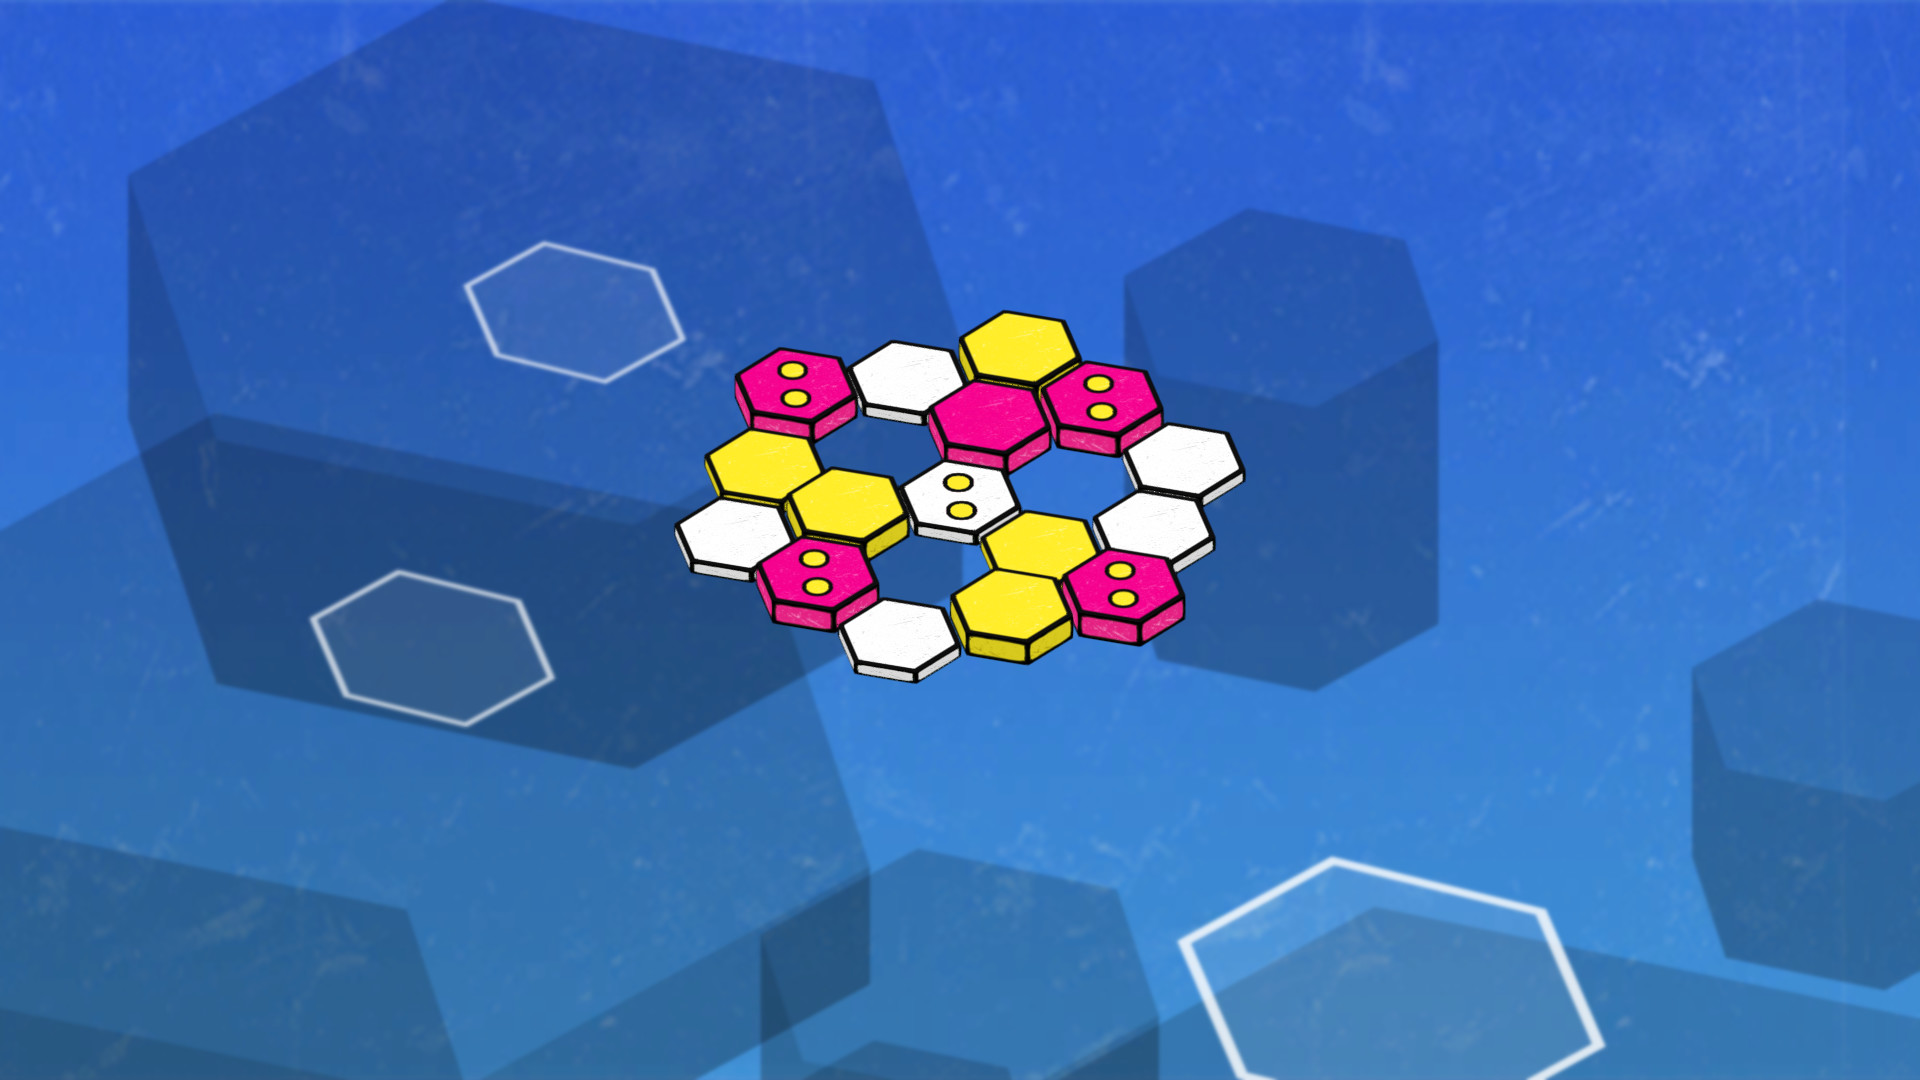 Wayout 2: Hex screenshot